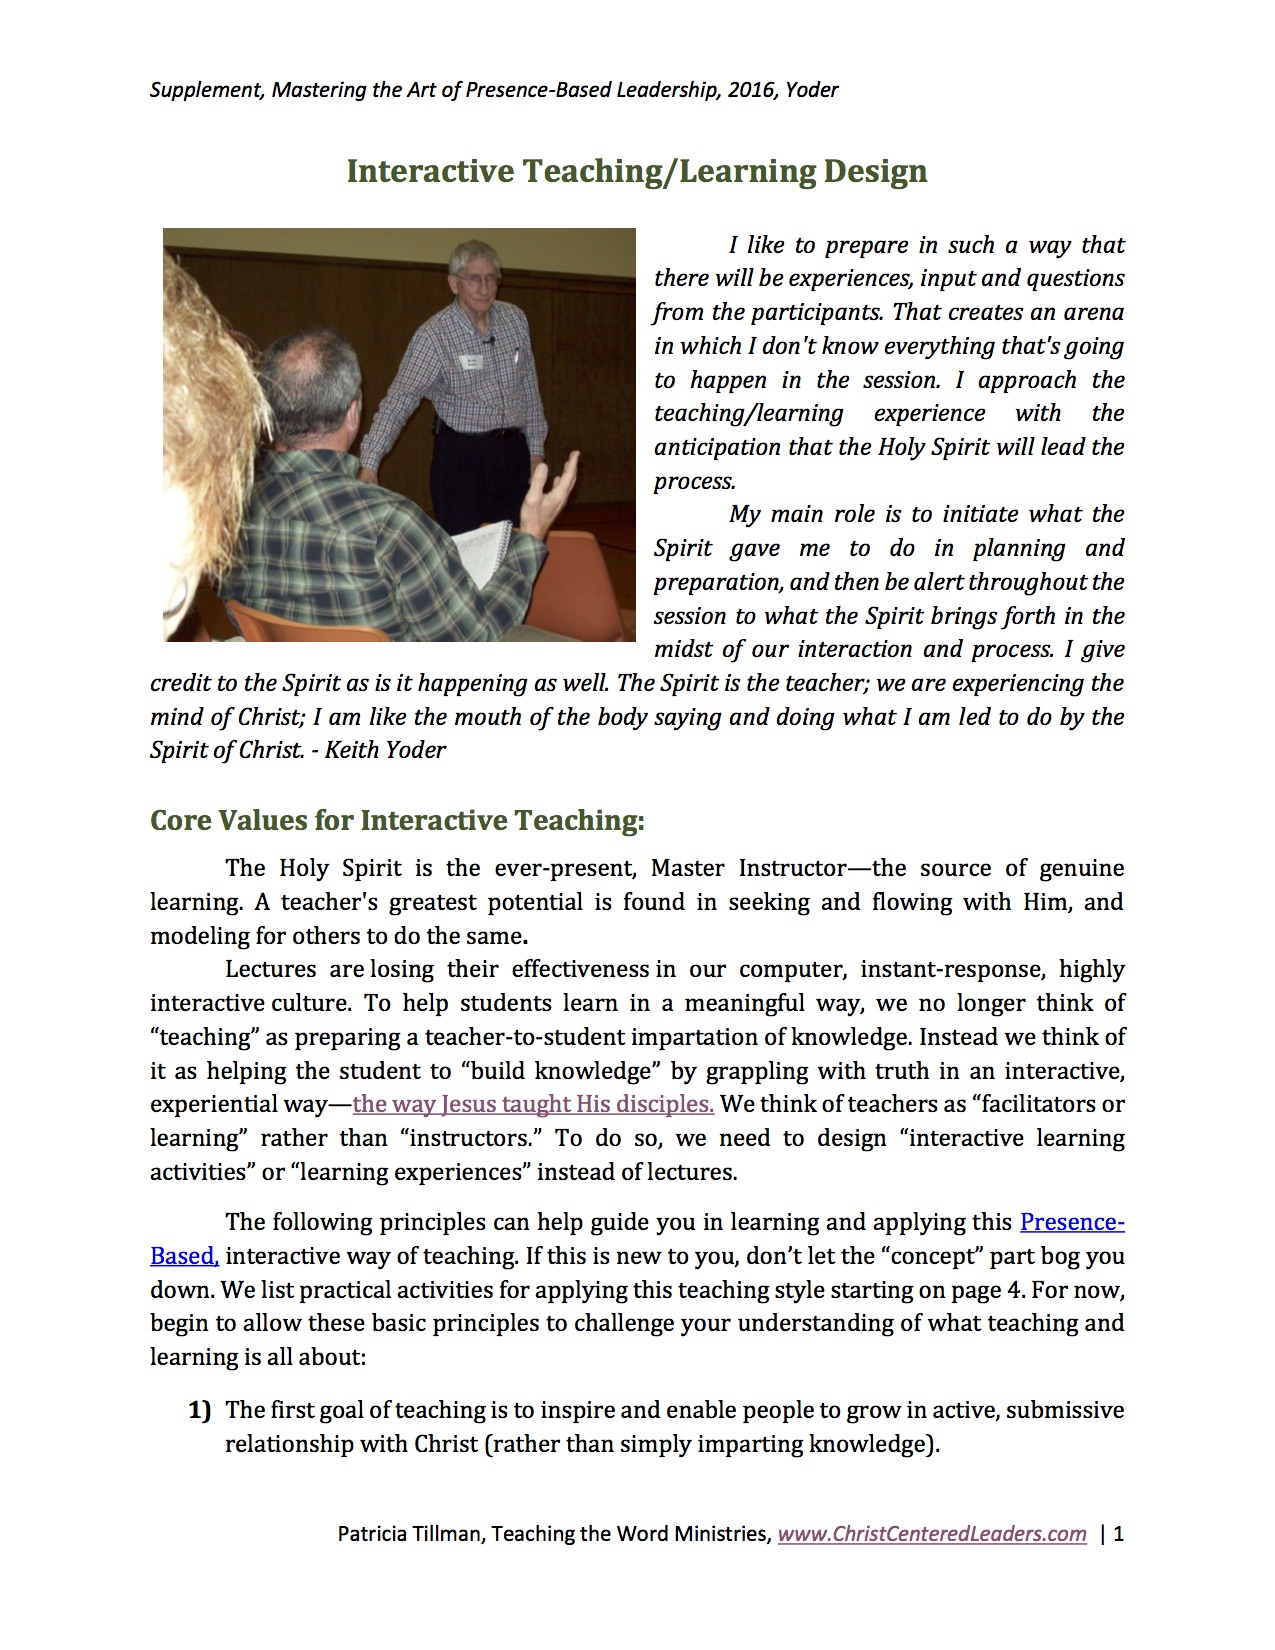 Interactive Teaching/Learning Design